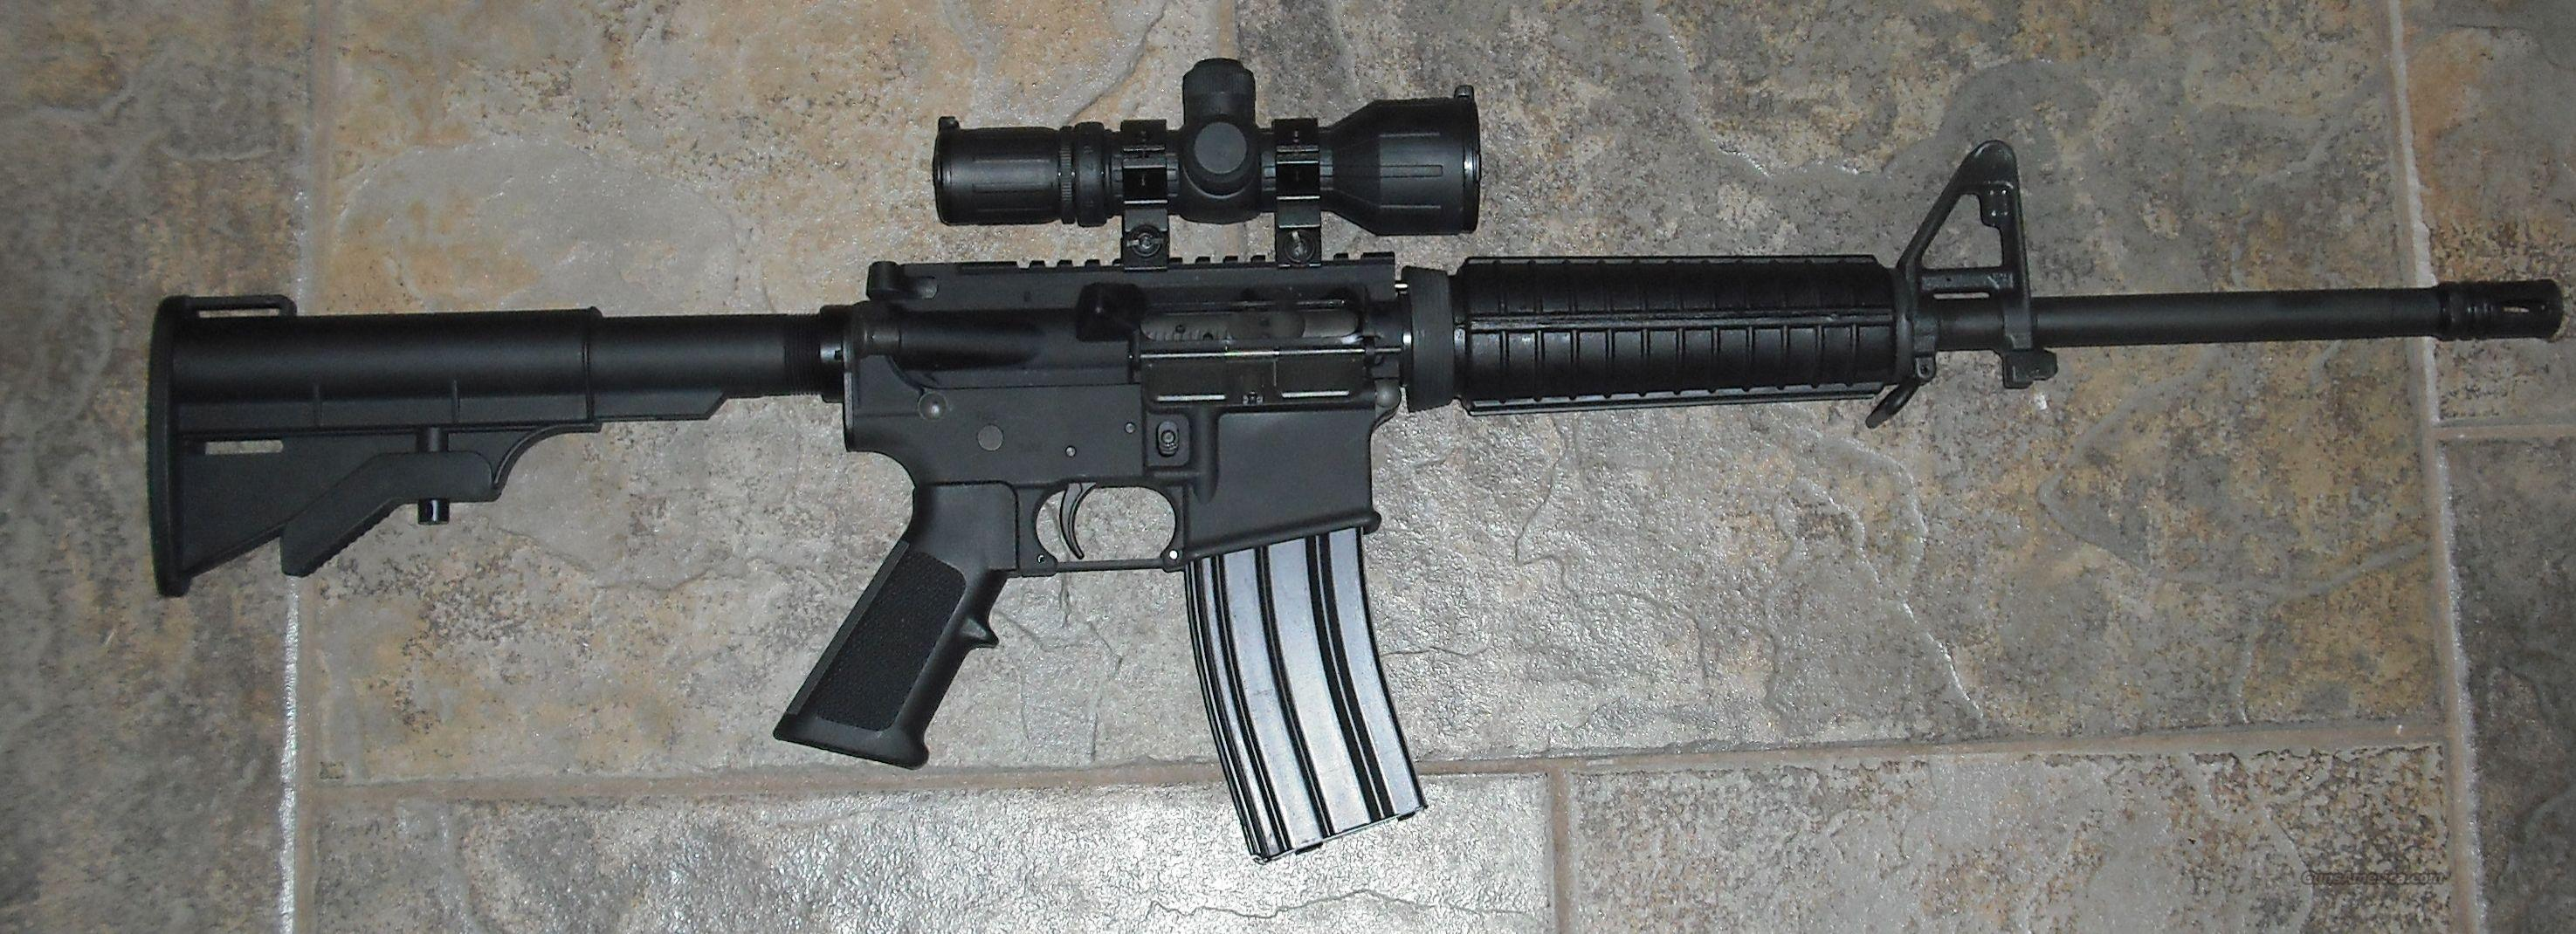 DPMS with Scope  Guns > Rifles > AR-15 Rifles - Small Manufacturers > Complete Rifle